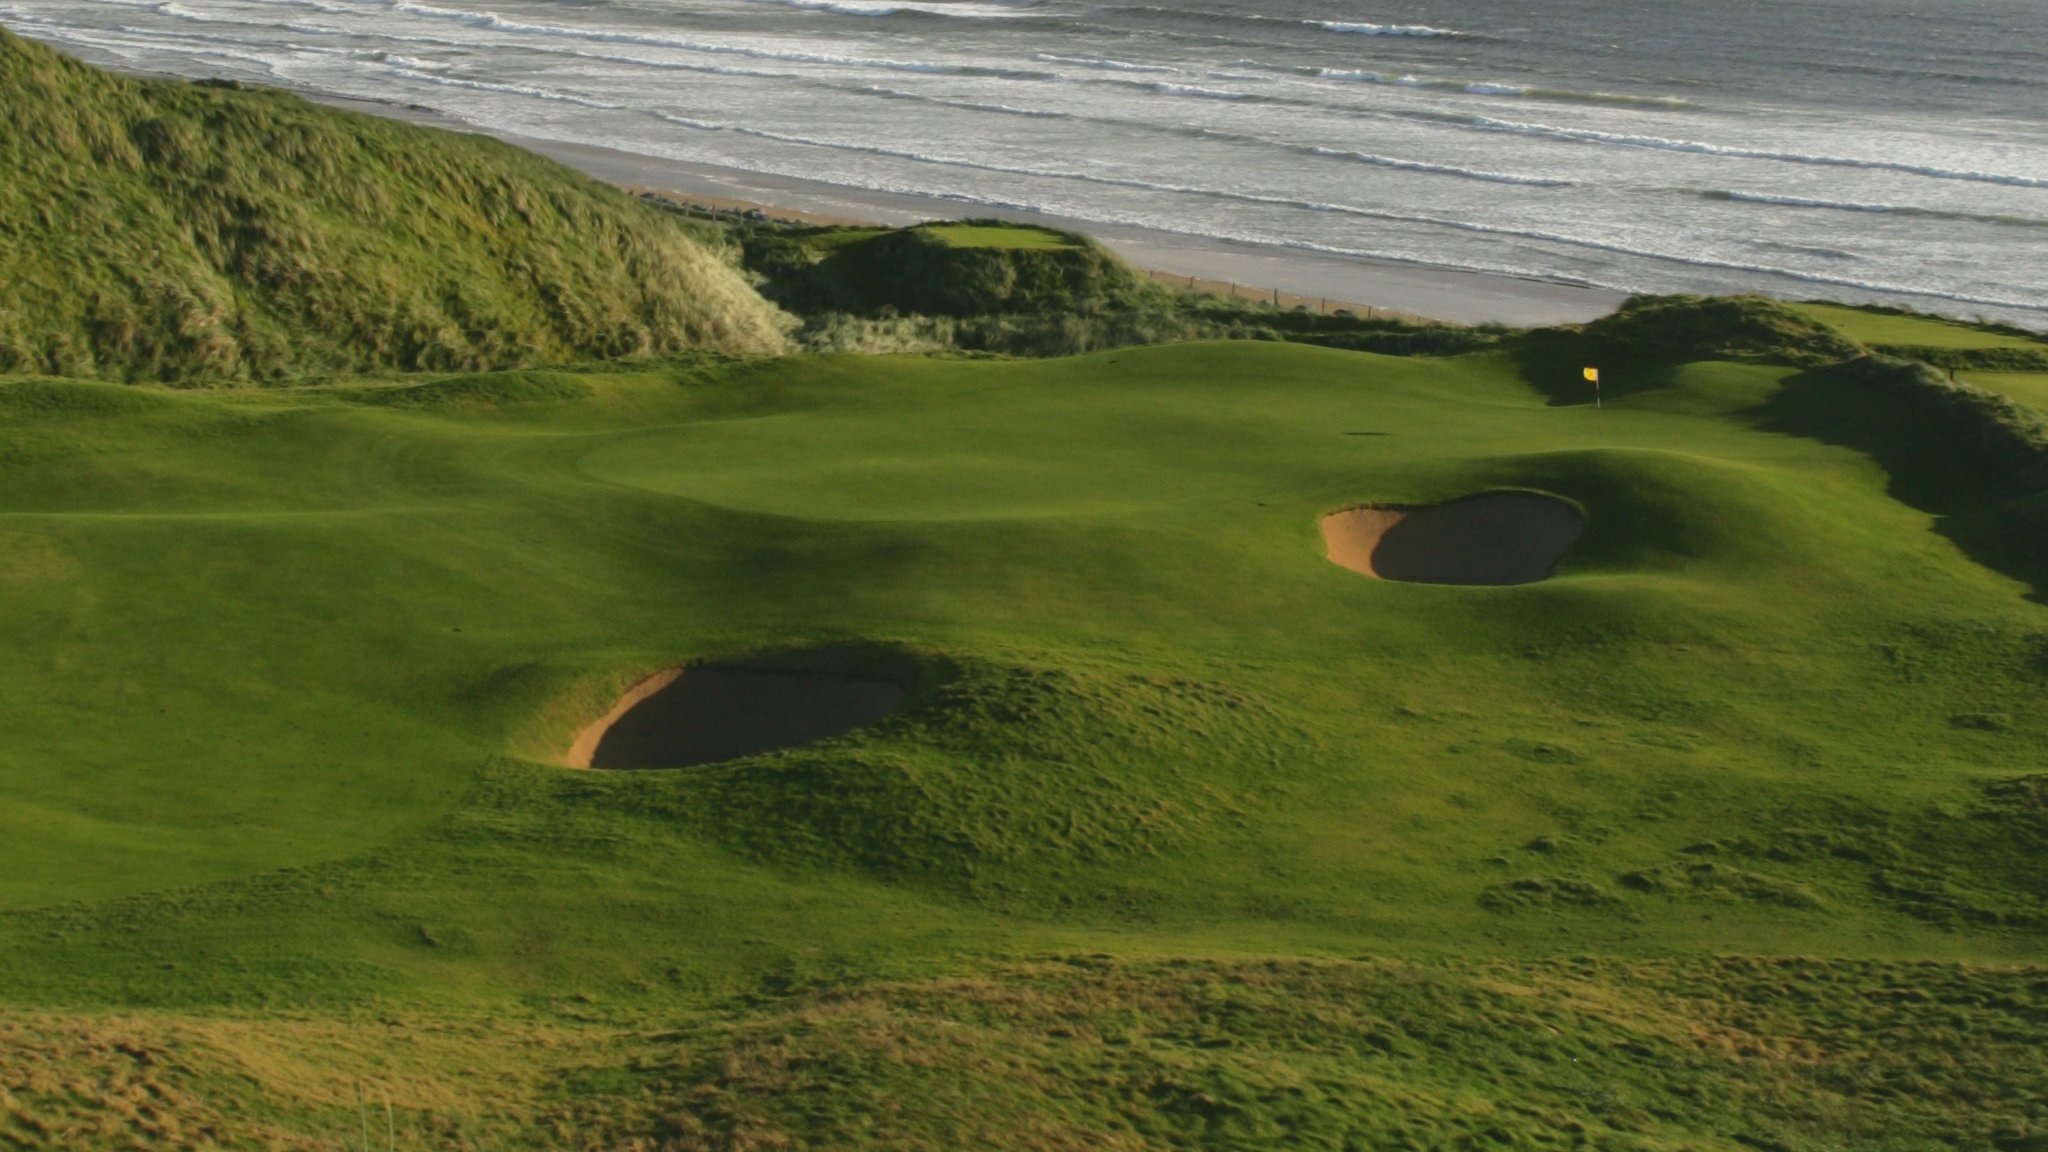 Irish Open: Lahinch links to host event in 2019